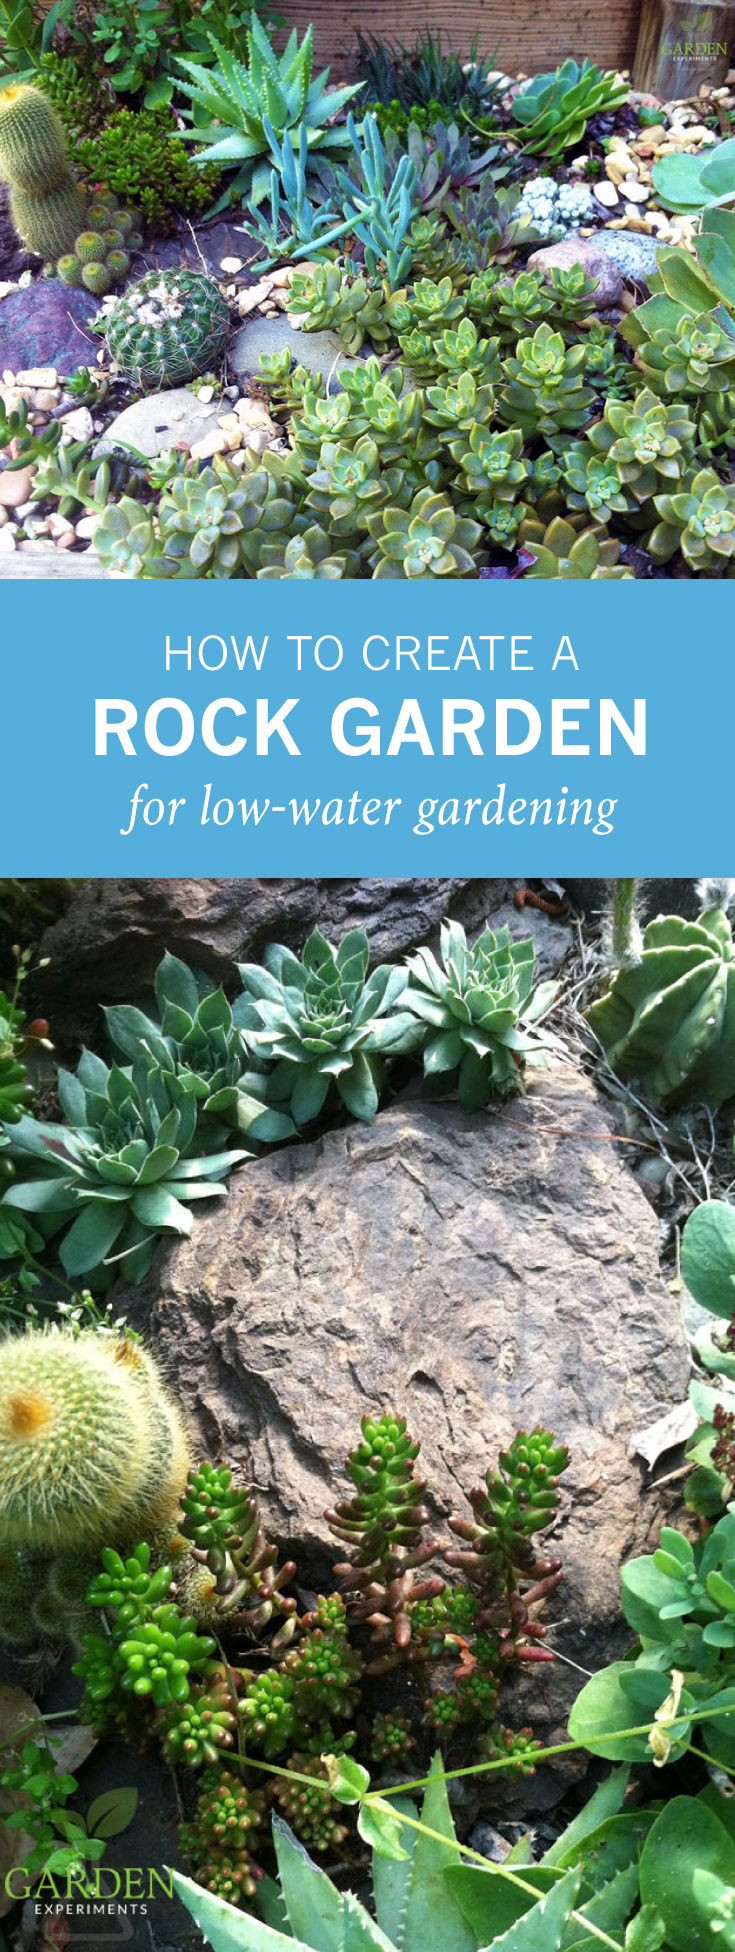 How To Create A Rock Garden For Low-Water Gardening